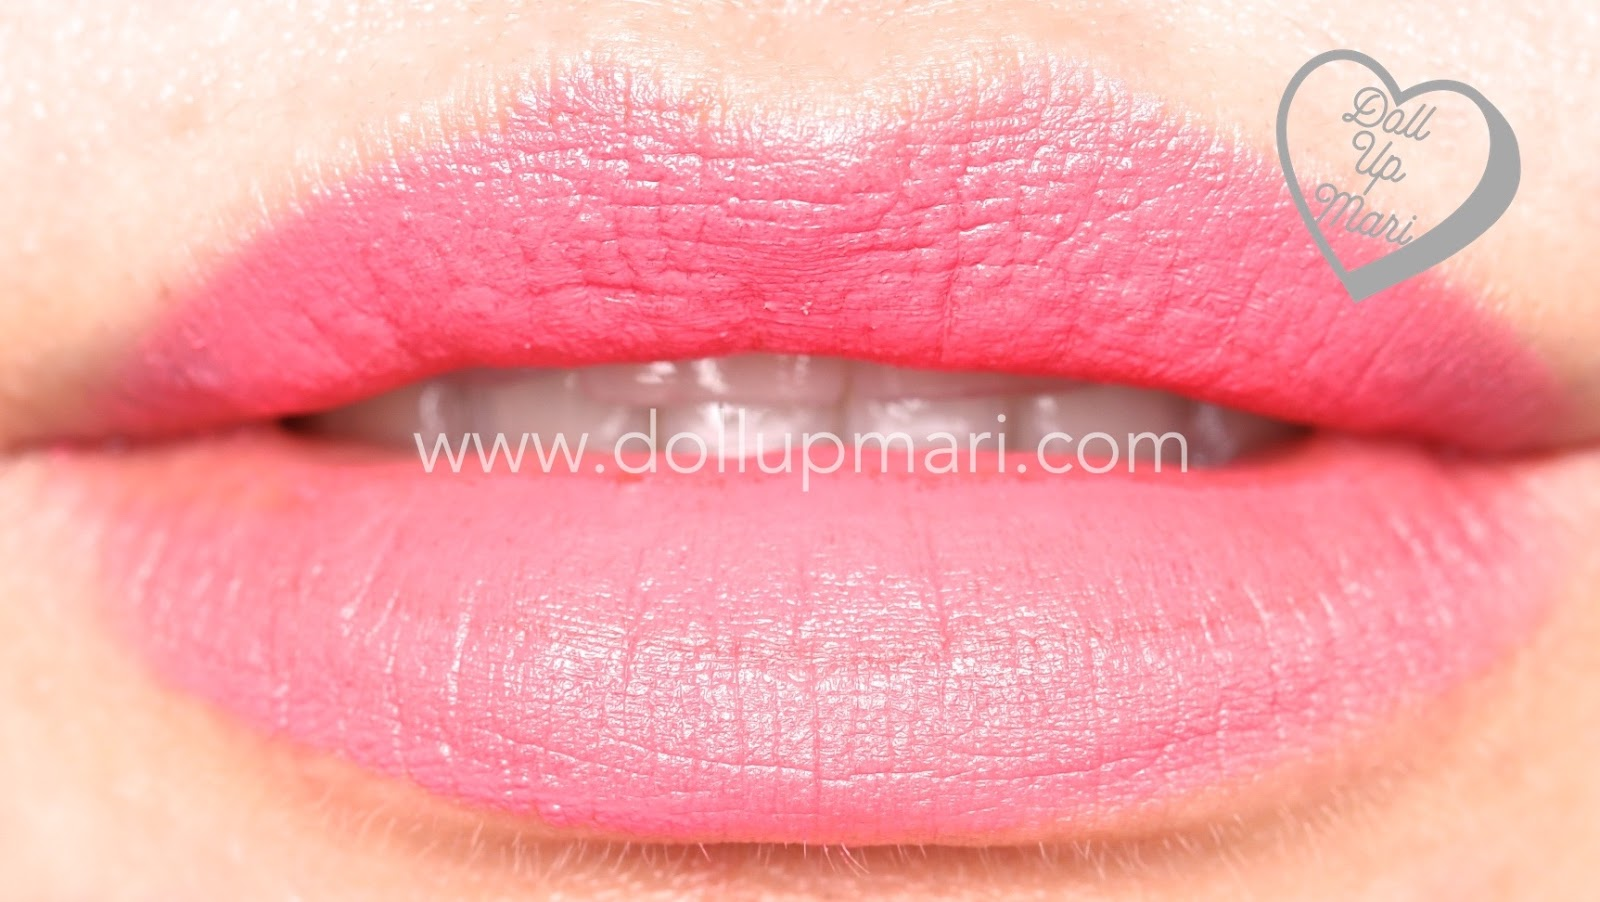 lip swatch Rose Awakening shade of AVON Perfectly Matte Lipstick